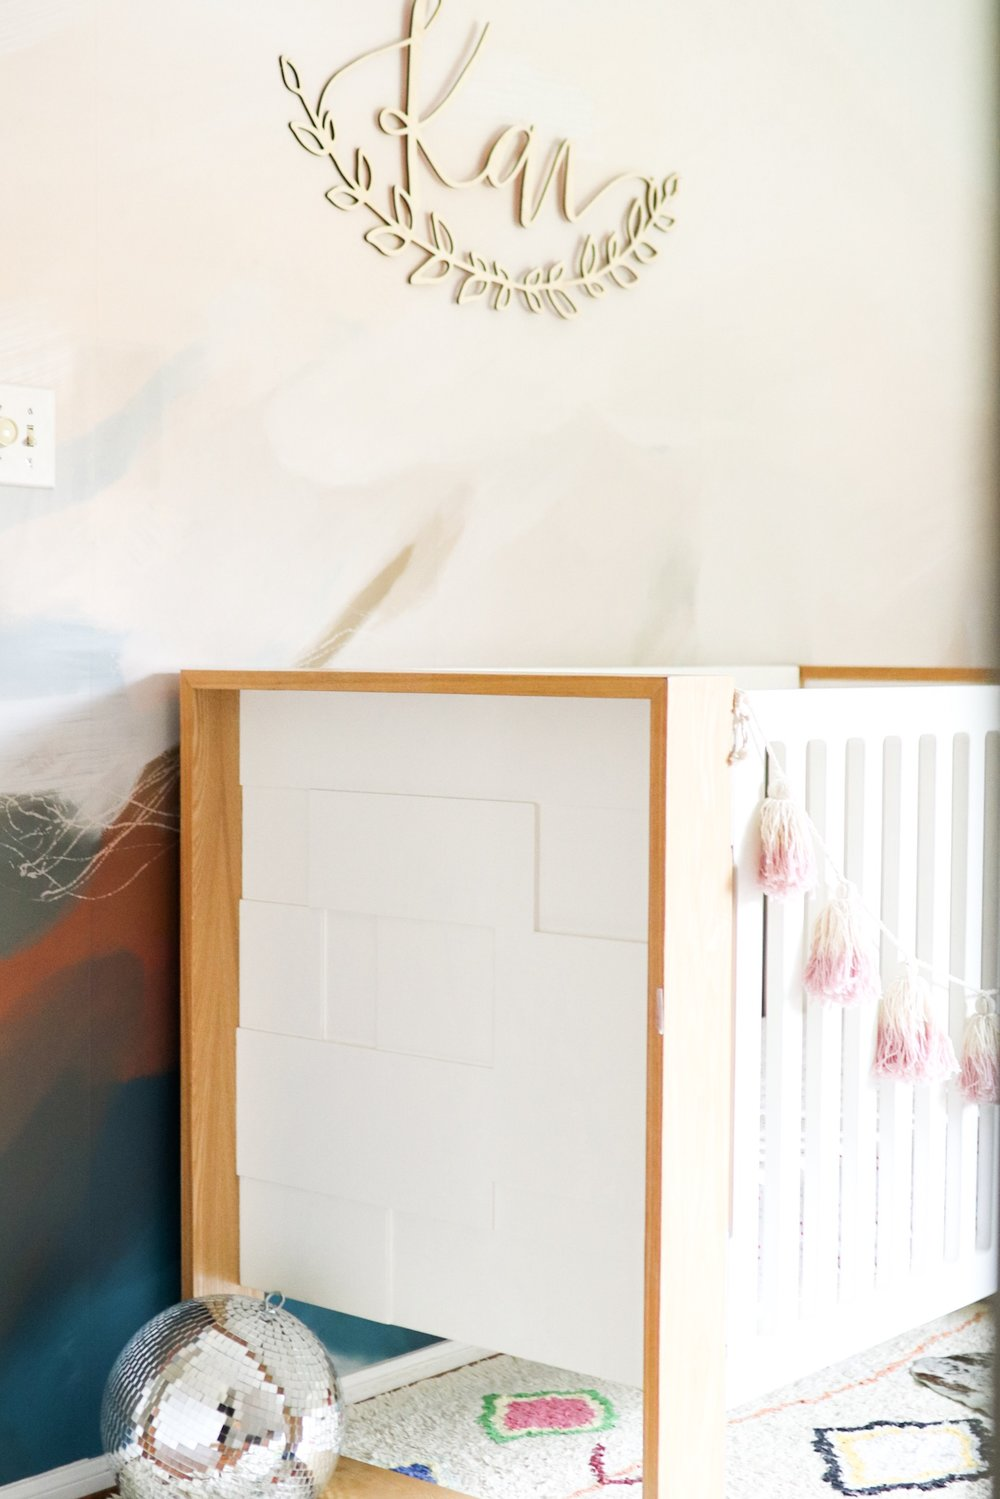 Nursery transformation before and after minted mural removable wallpaper-1.jpg